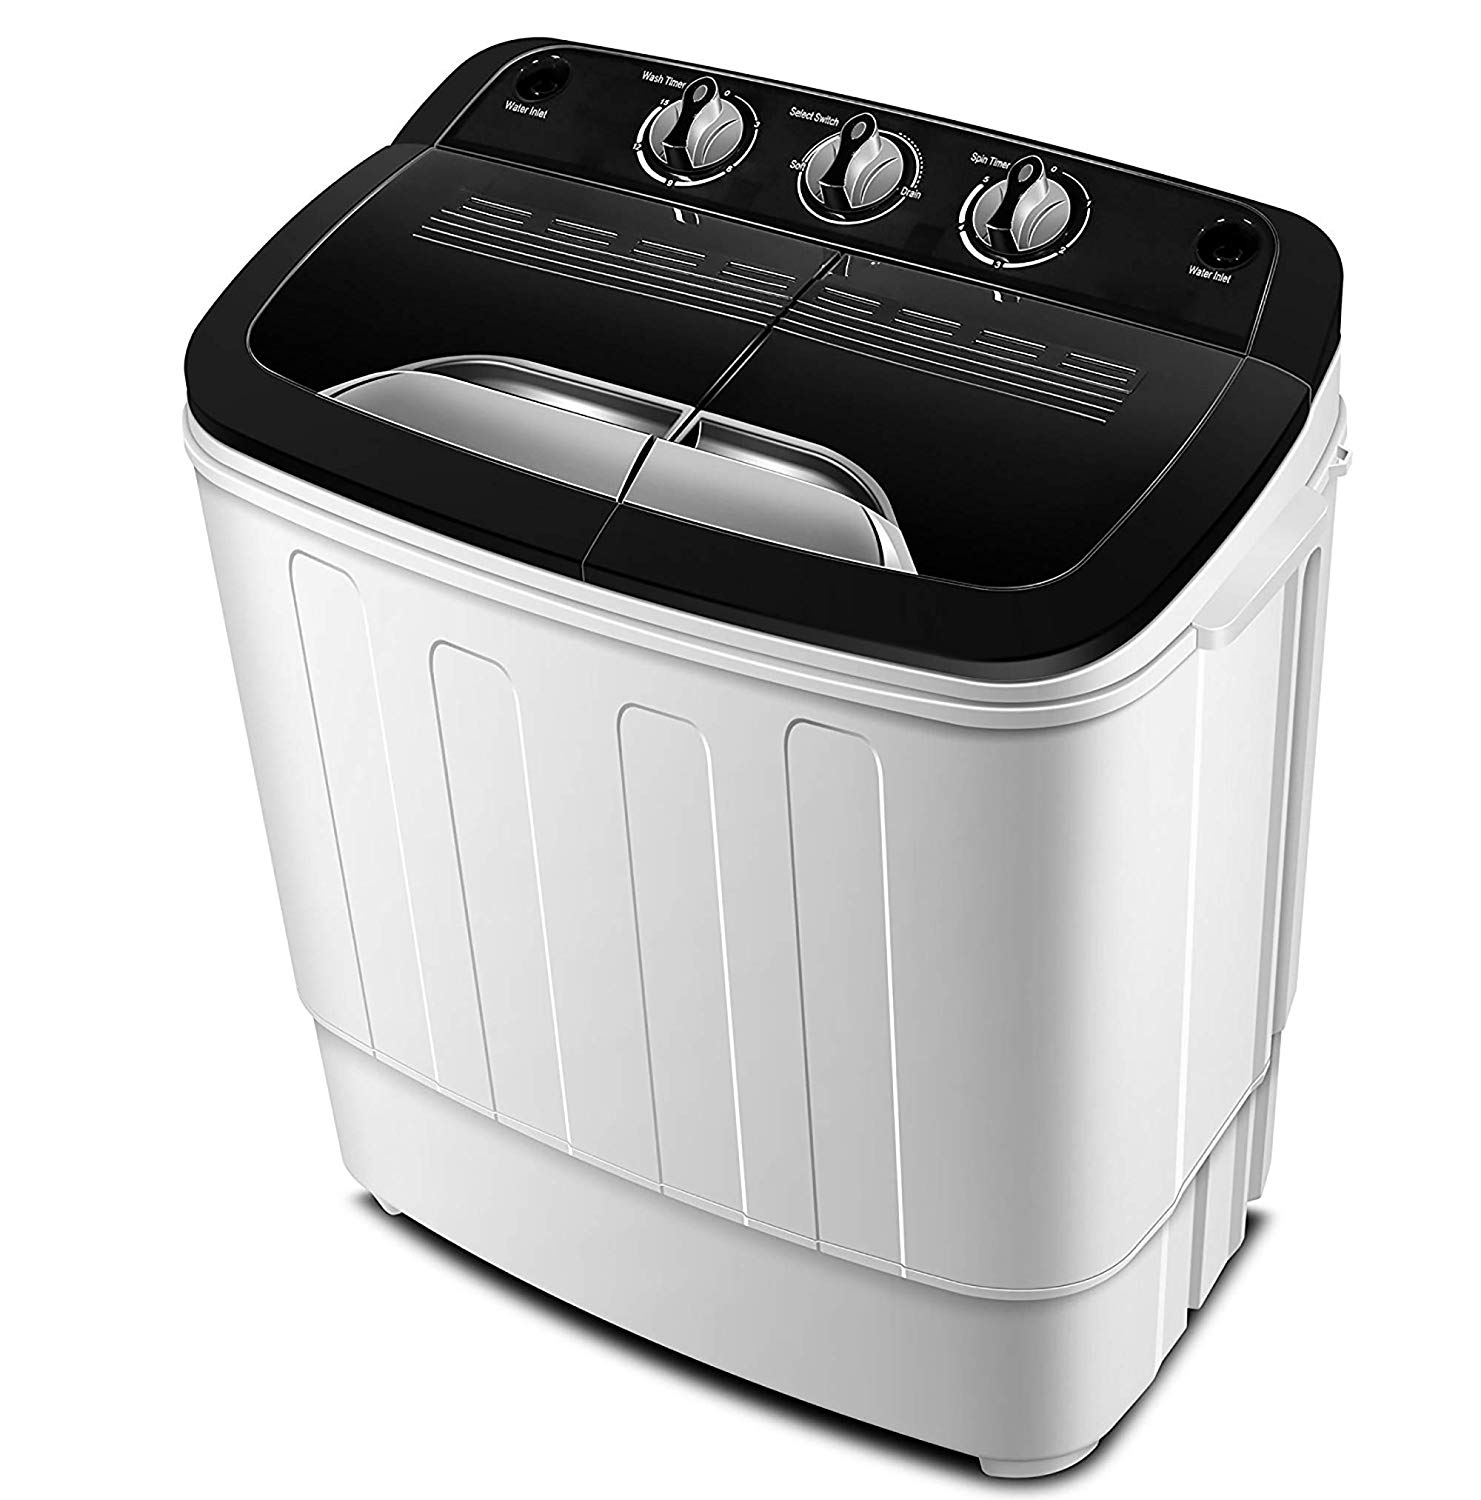 Portable Washing Machine TG23 - Twin Tub Washer Machine with Wash and Spin Cycle Compartments by ThinkGizmos (Trademark Protected)